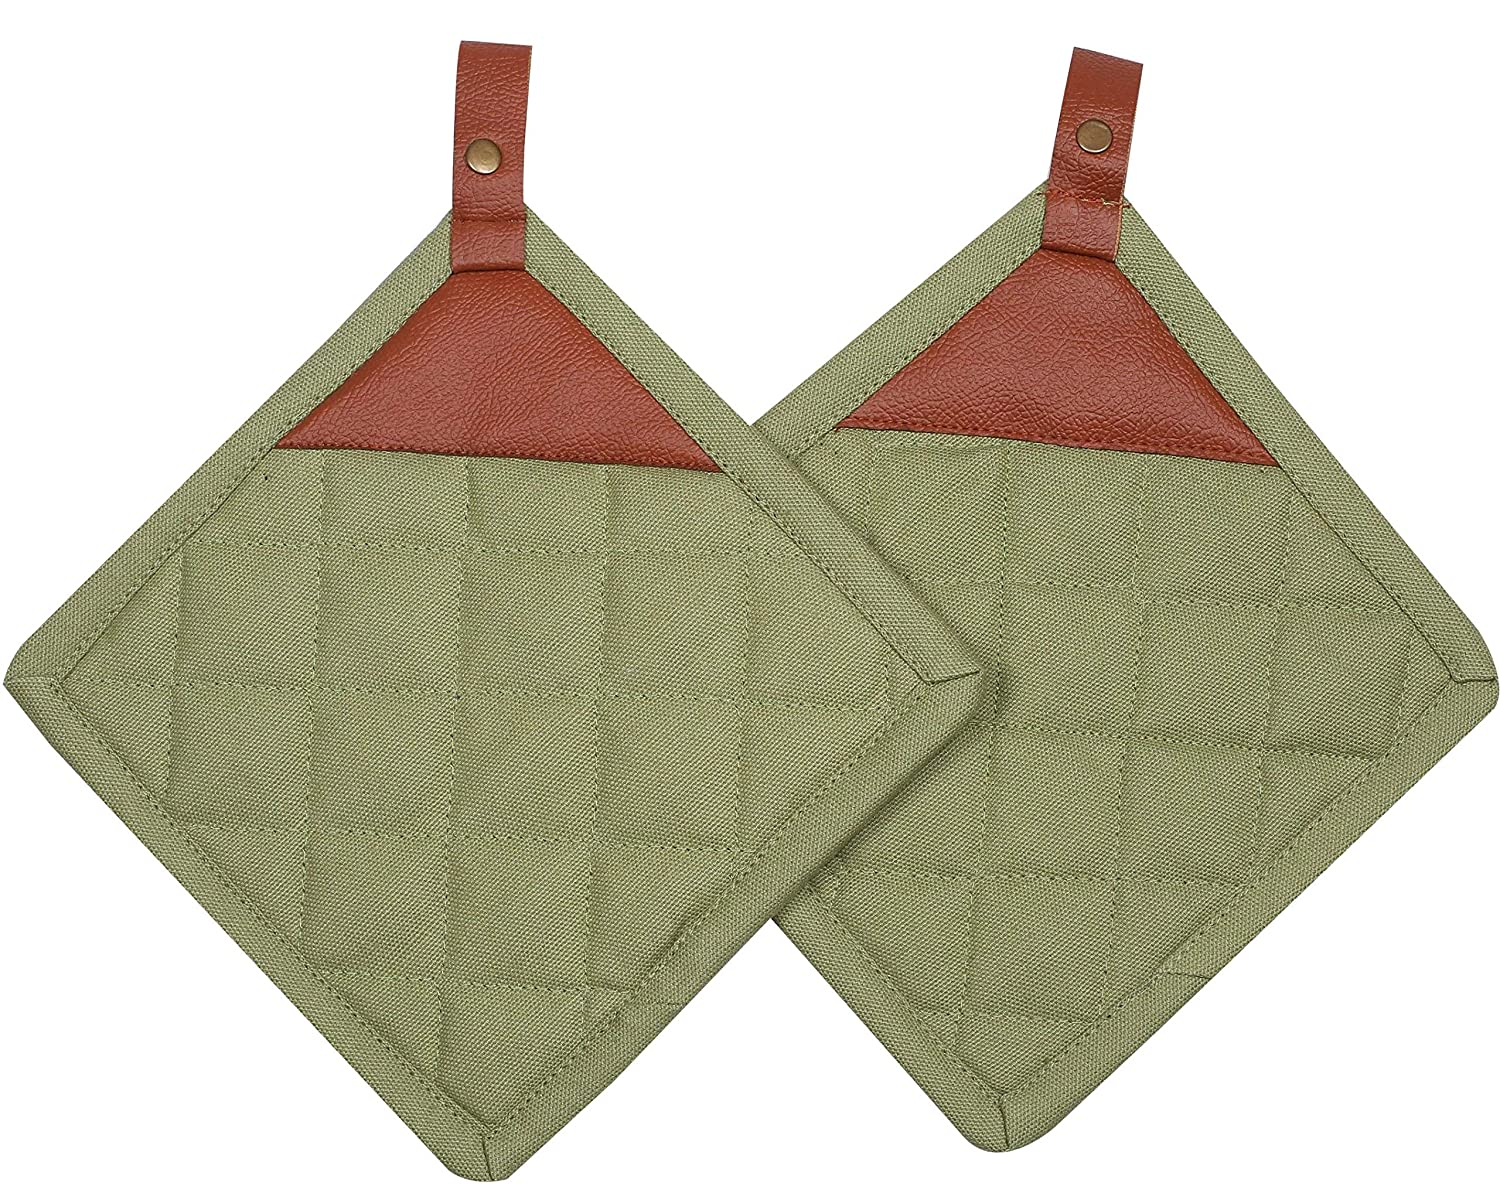 Cote De Amor Set of 2 Pot Holders Bulk Heat Resistant and Machine Washable, 100% Cotton Kitchen Hot Pads Pot Holders with Heavy Duty Leather Hanger - Green